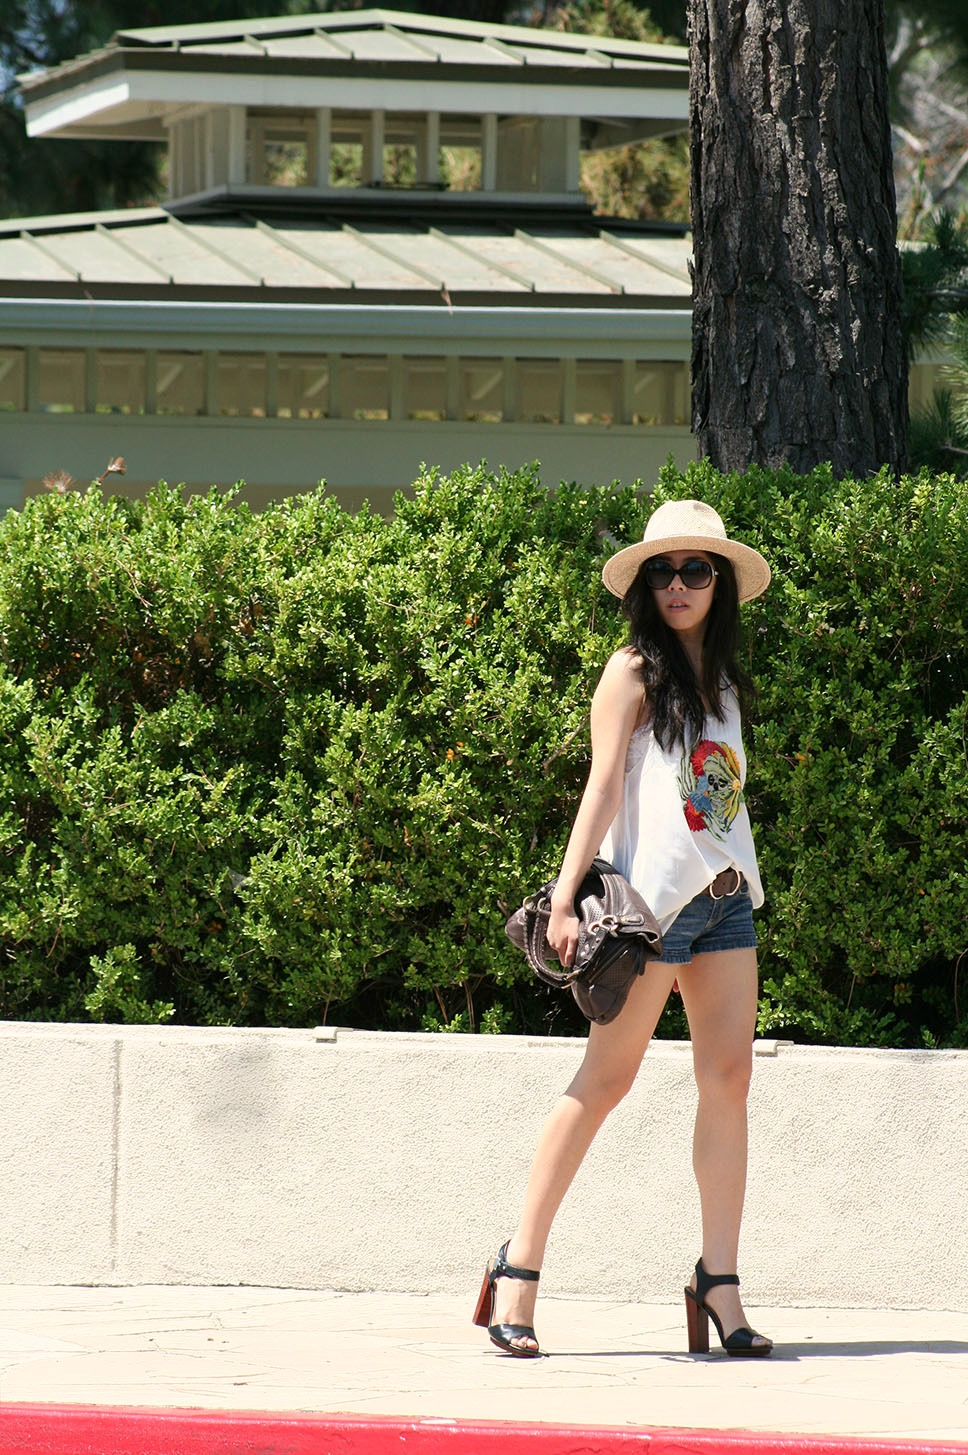 Adrienne Nguyen_Invictus_Fashion Blogger_How to Wear a Panama Hat_What to wear with a ferdora